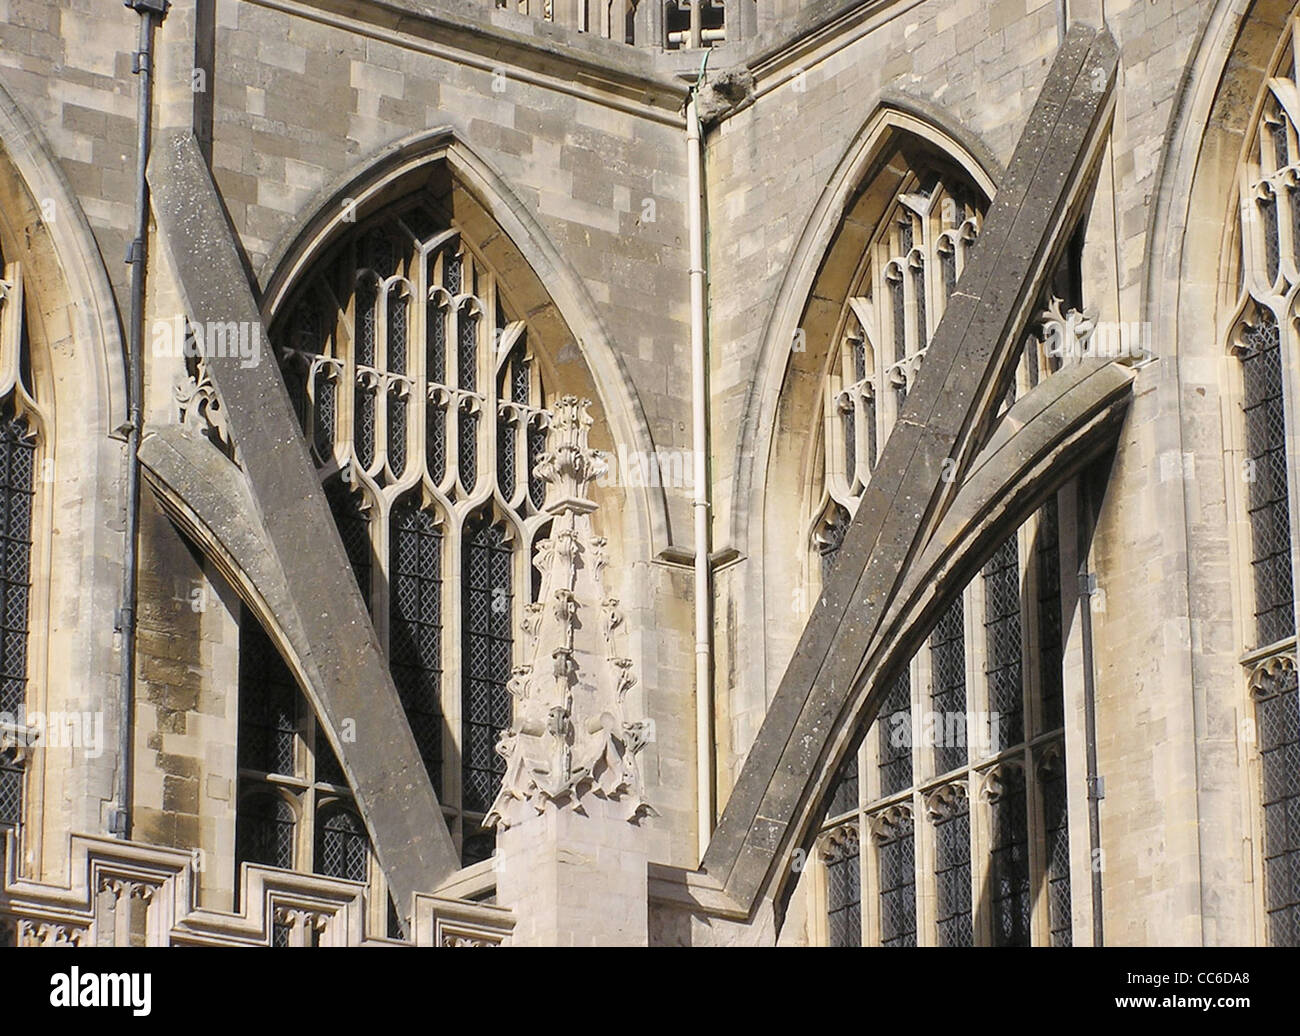 Close-up of two flying buttresses at Bath Abbey, Bath, England. Stock Photo